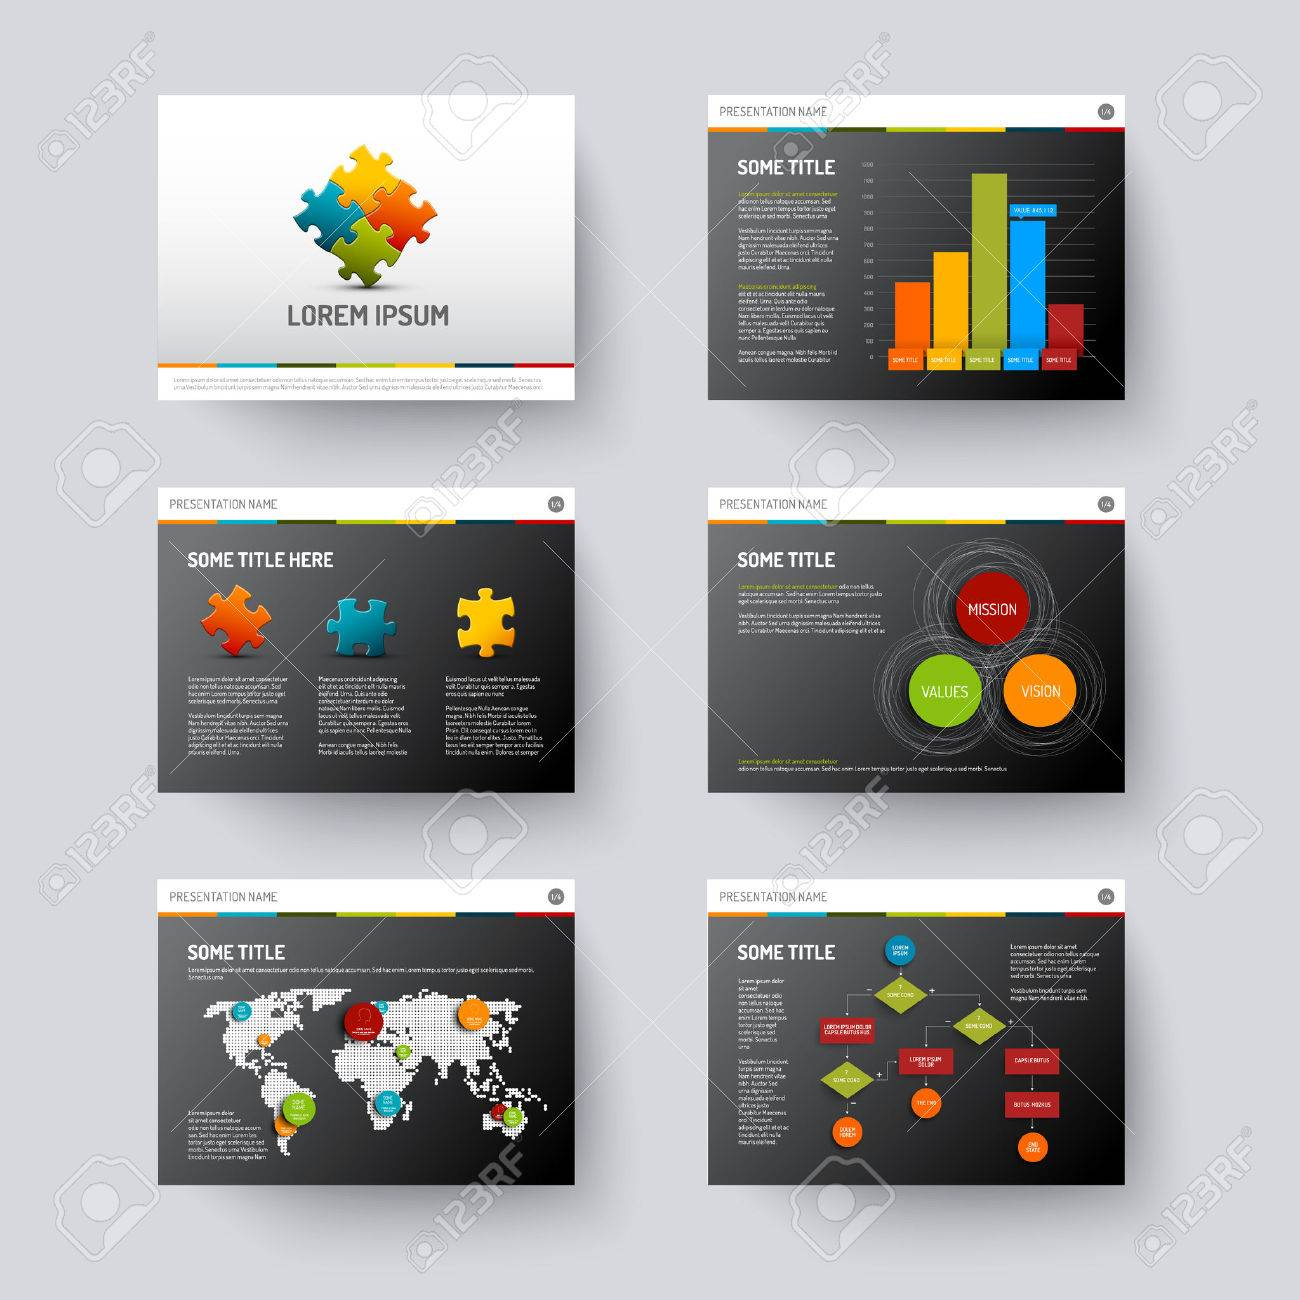 Vector Dark Template For Presentation Slides With Graphs And ...